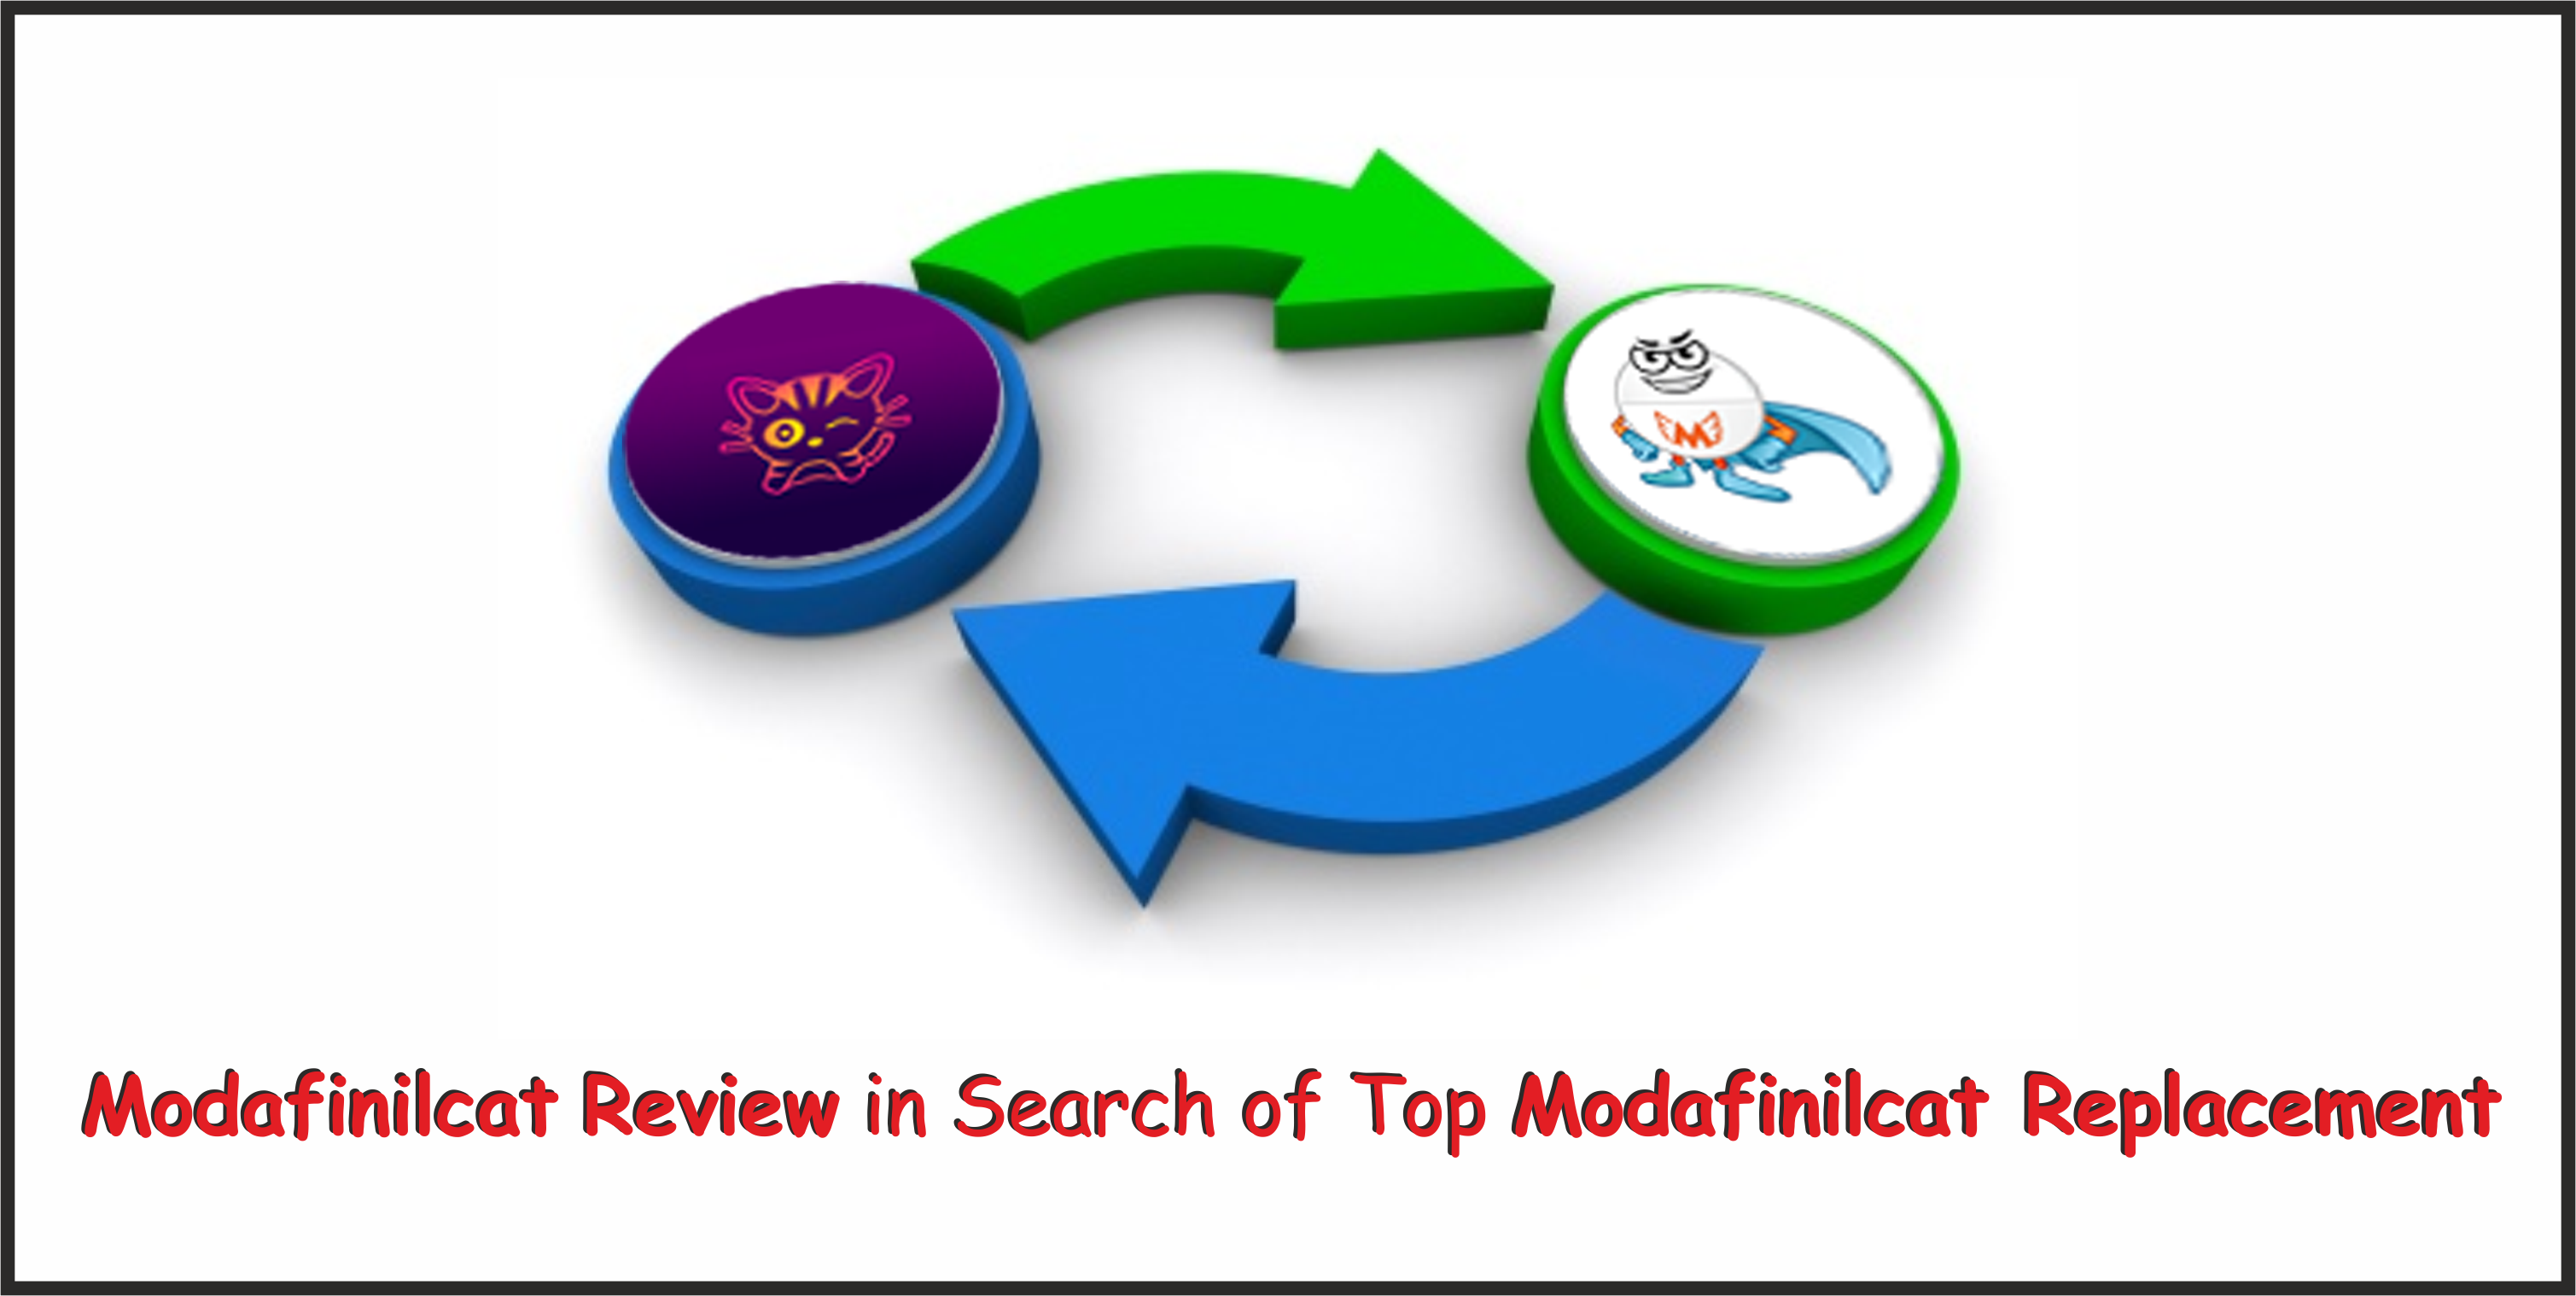 Modafinilcat Review in Search of Top Modafinilcat Replacement